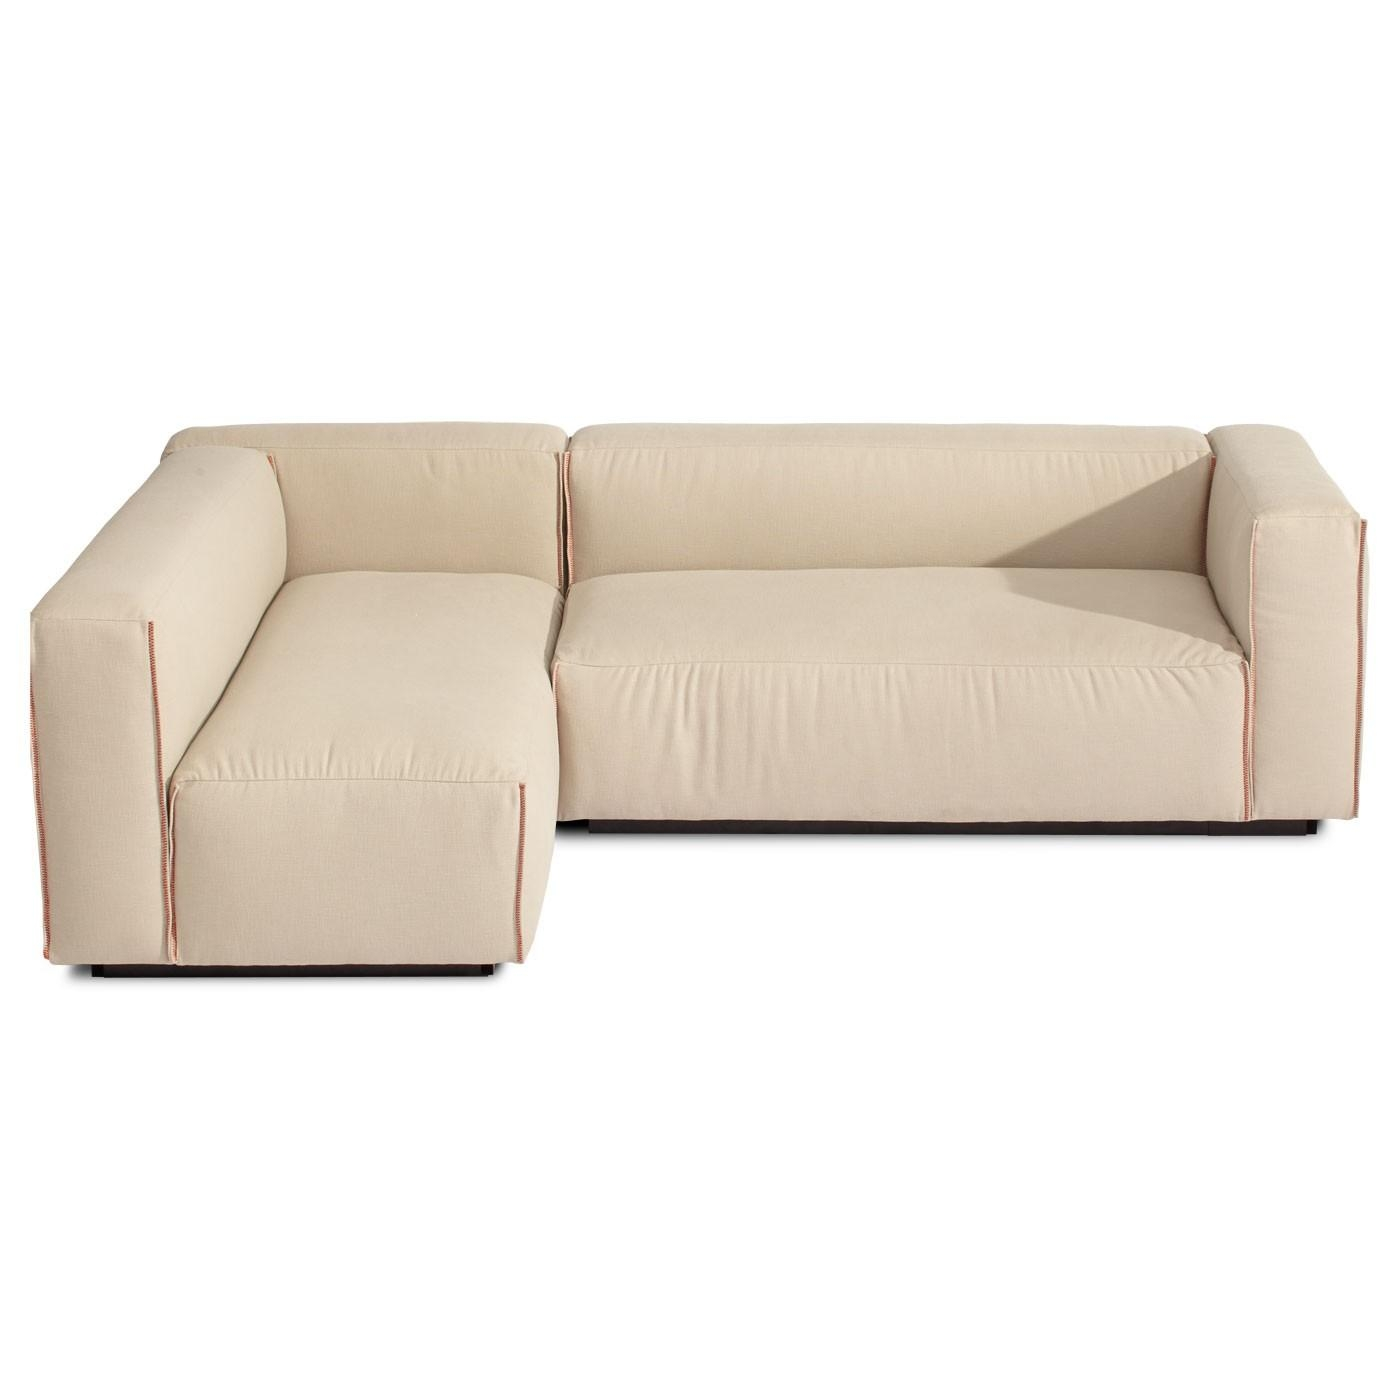 Small Armless Sectional Sofas (View 10 of 15)